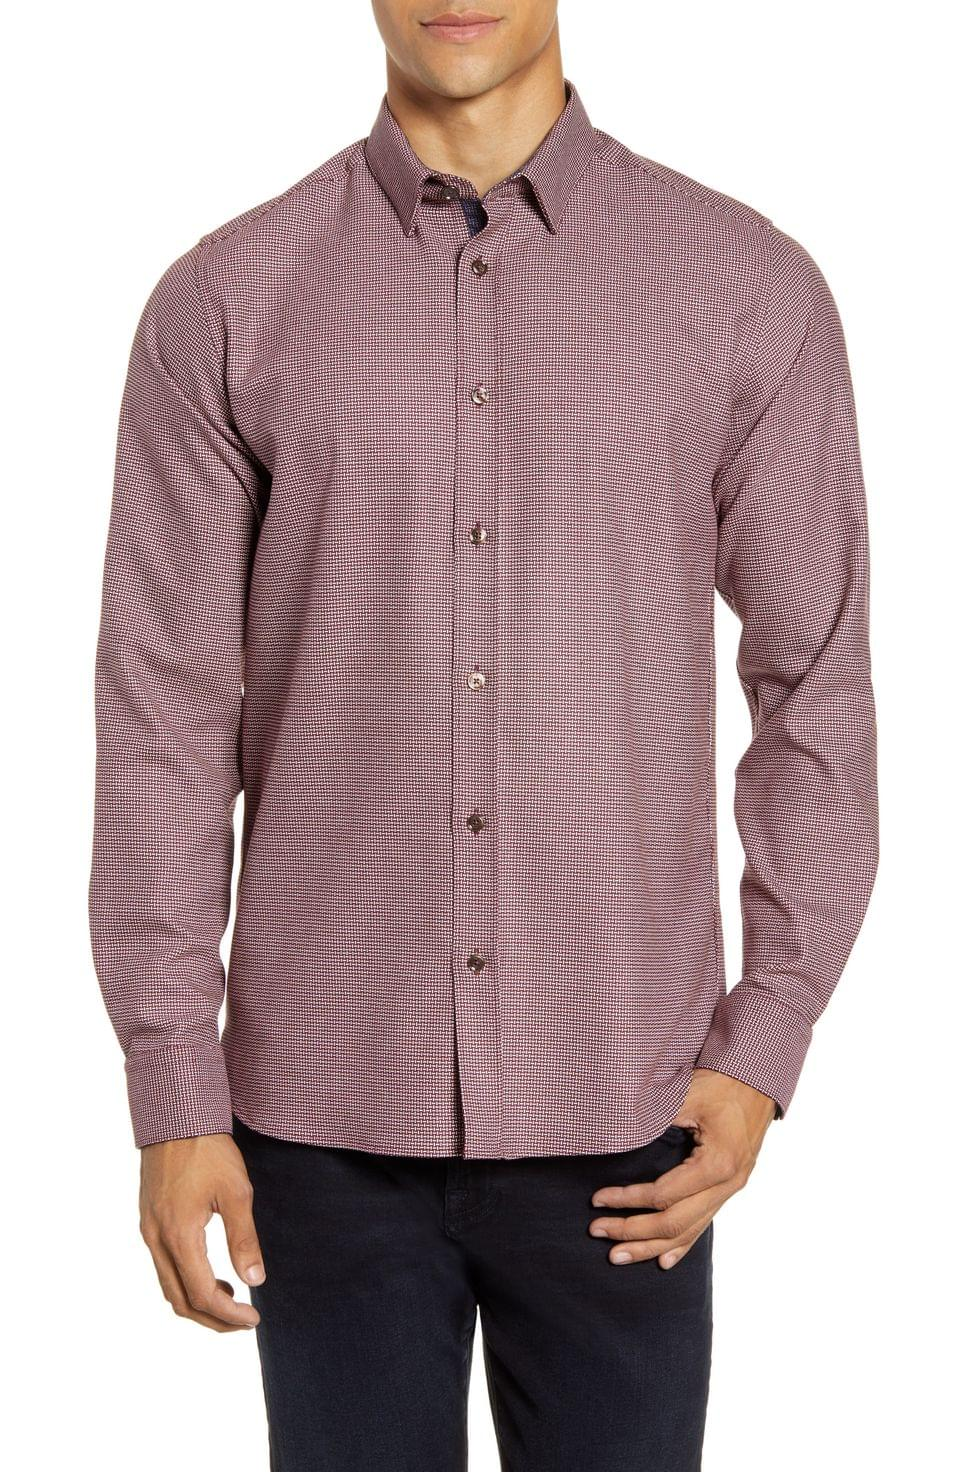 Men's Ted Baker London Slim Fit Button-Up Shirt